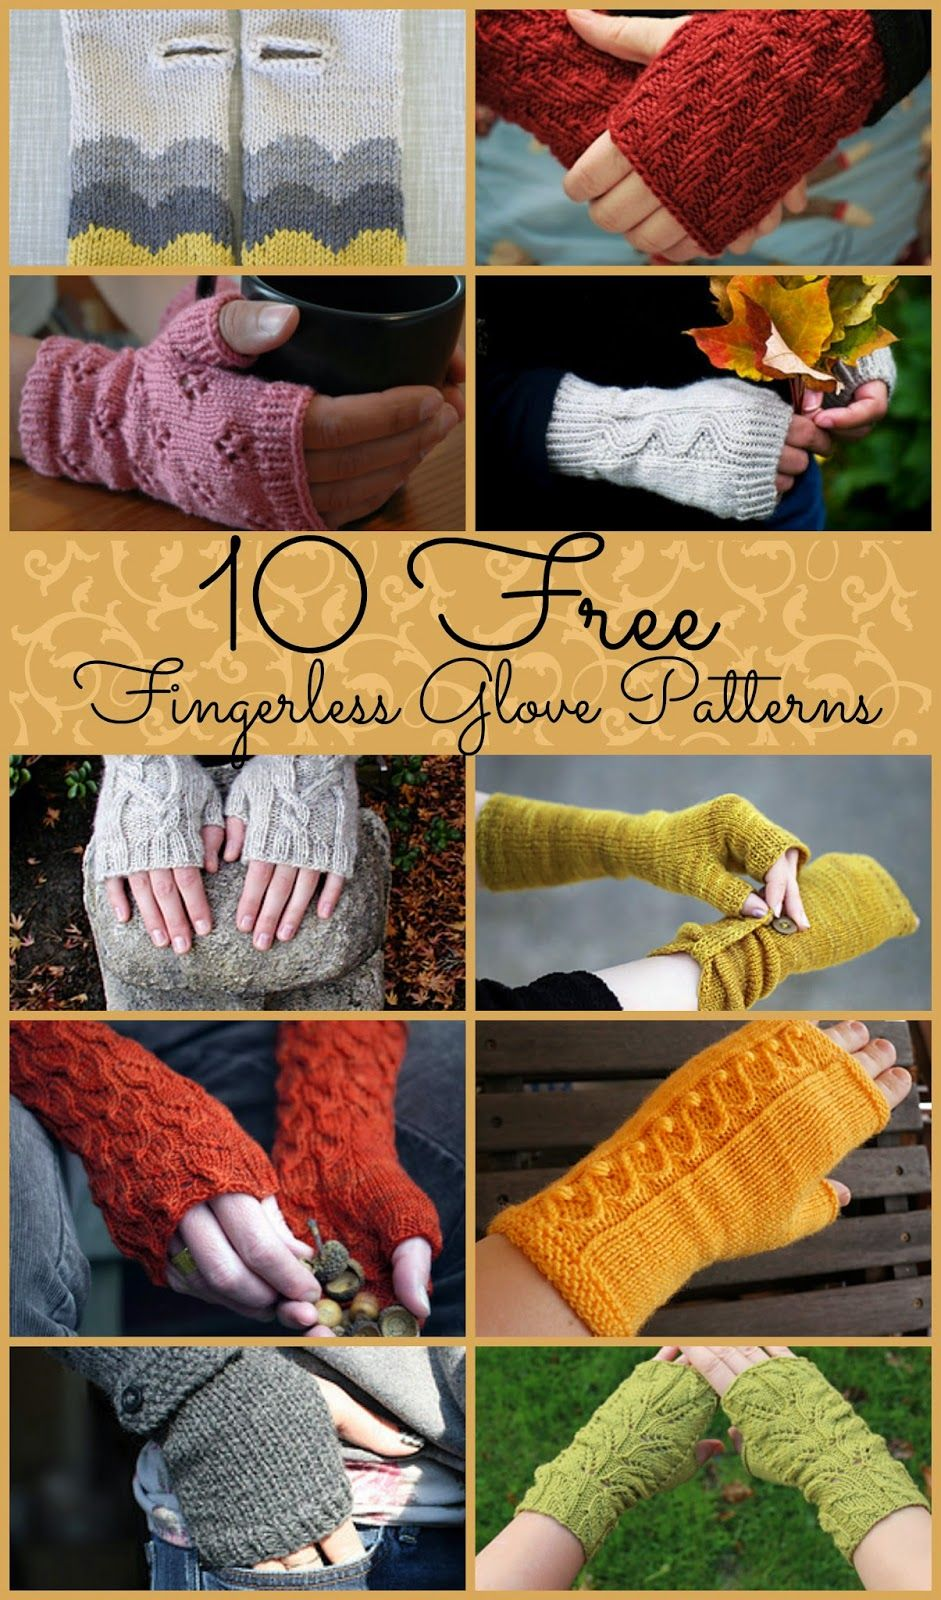 10 free fingerless gloves patterns free knitting patterns quick 10 free fingerless gloves patterns free knitting patterns quick and easy christmas gift idea bankloansurffo Images